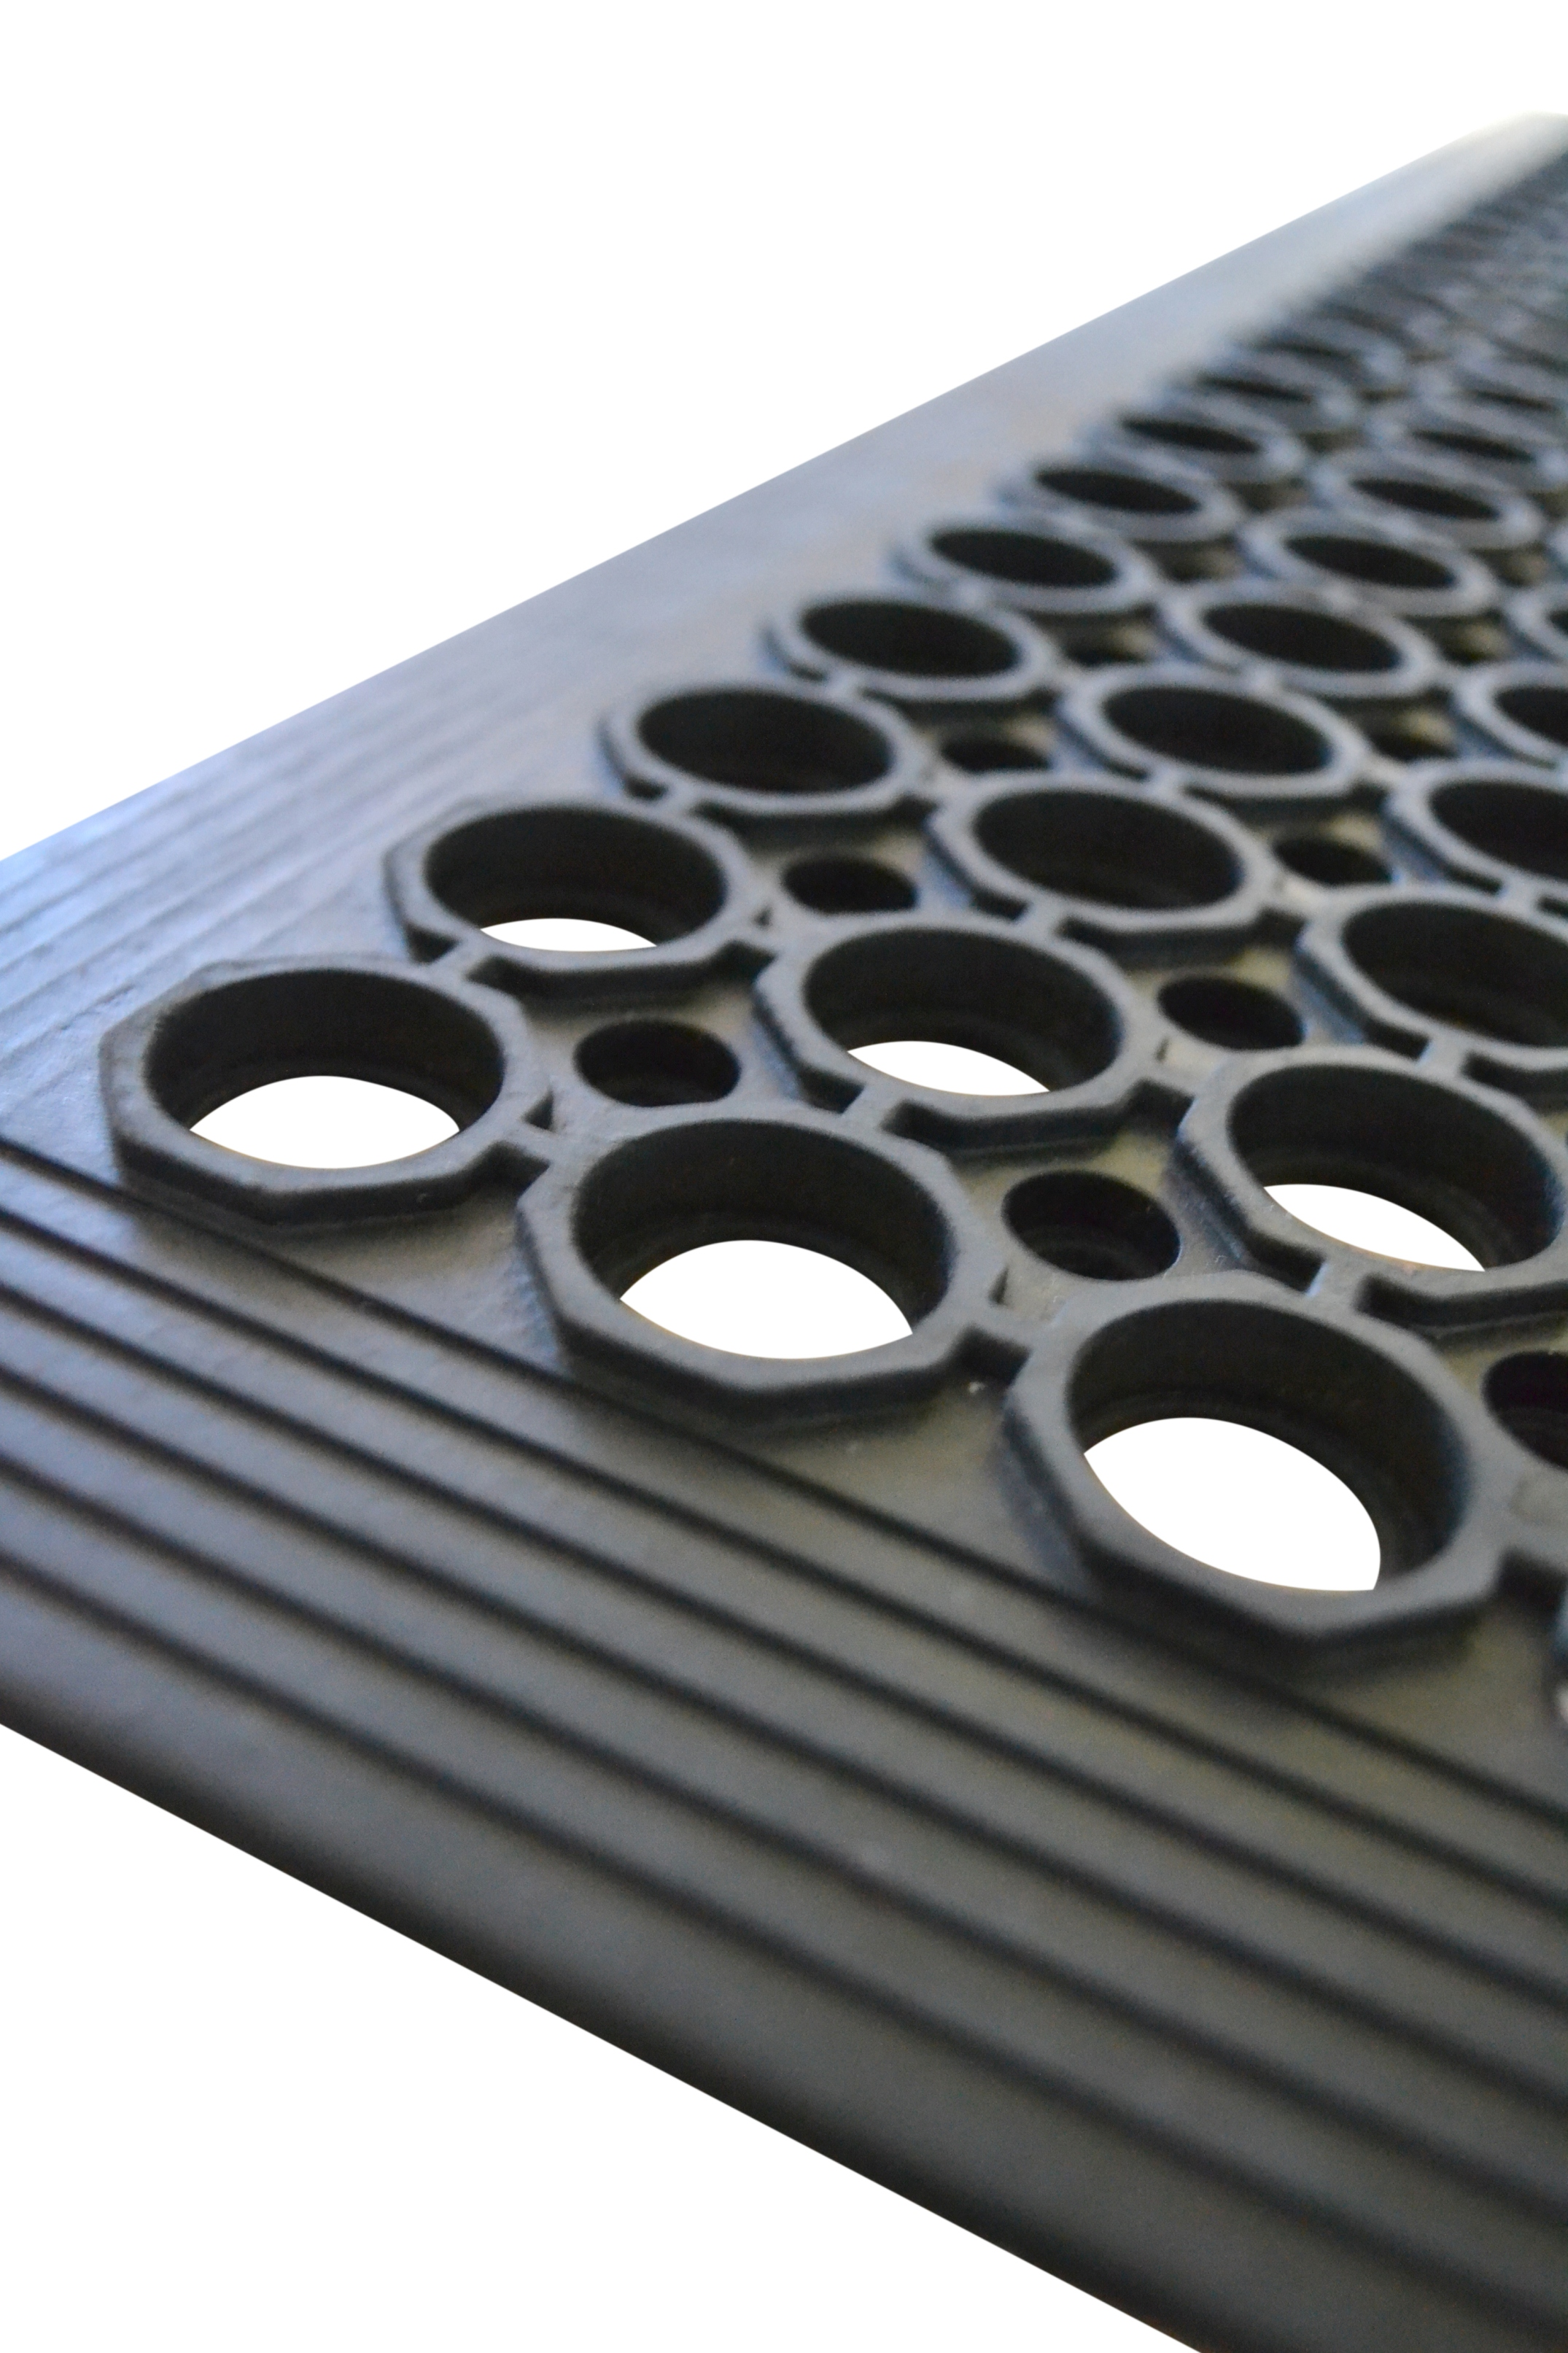 Constructed from nitrite & natural rubber, our premium anti fatigue mats feature drainage holes & bevelled safety edge, suitable for wet arease & designed for exposure to grease & oil. Available in black & red. Order your anti fatigue mats today!